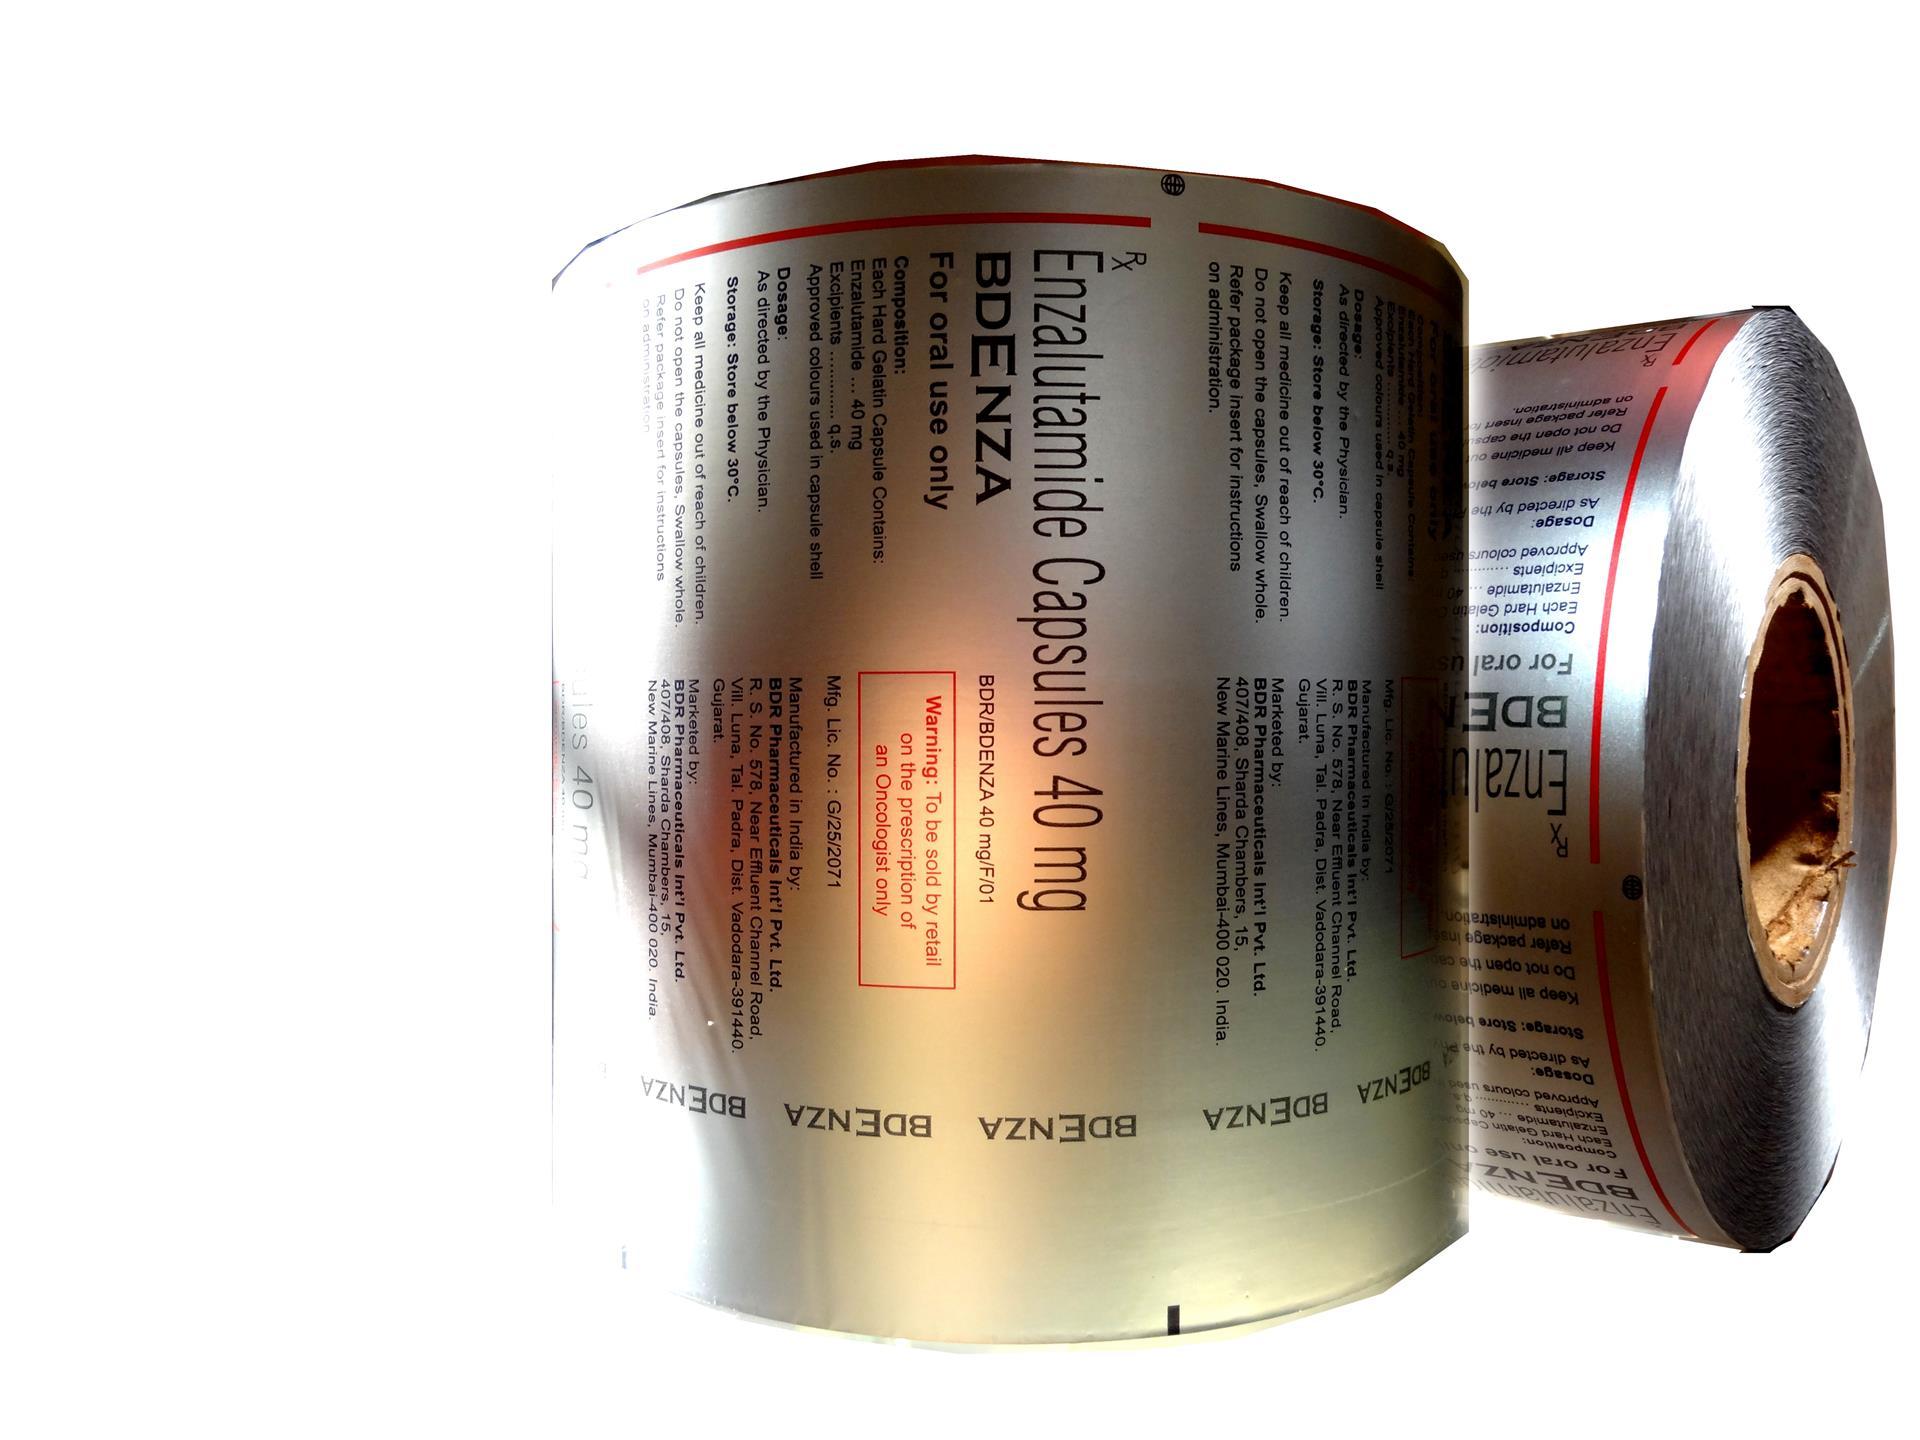 An image containing Blister Foil rolls used for Pharmaceutical Packaging